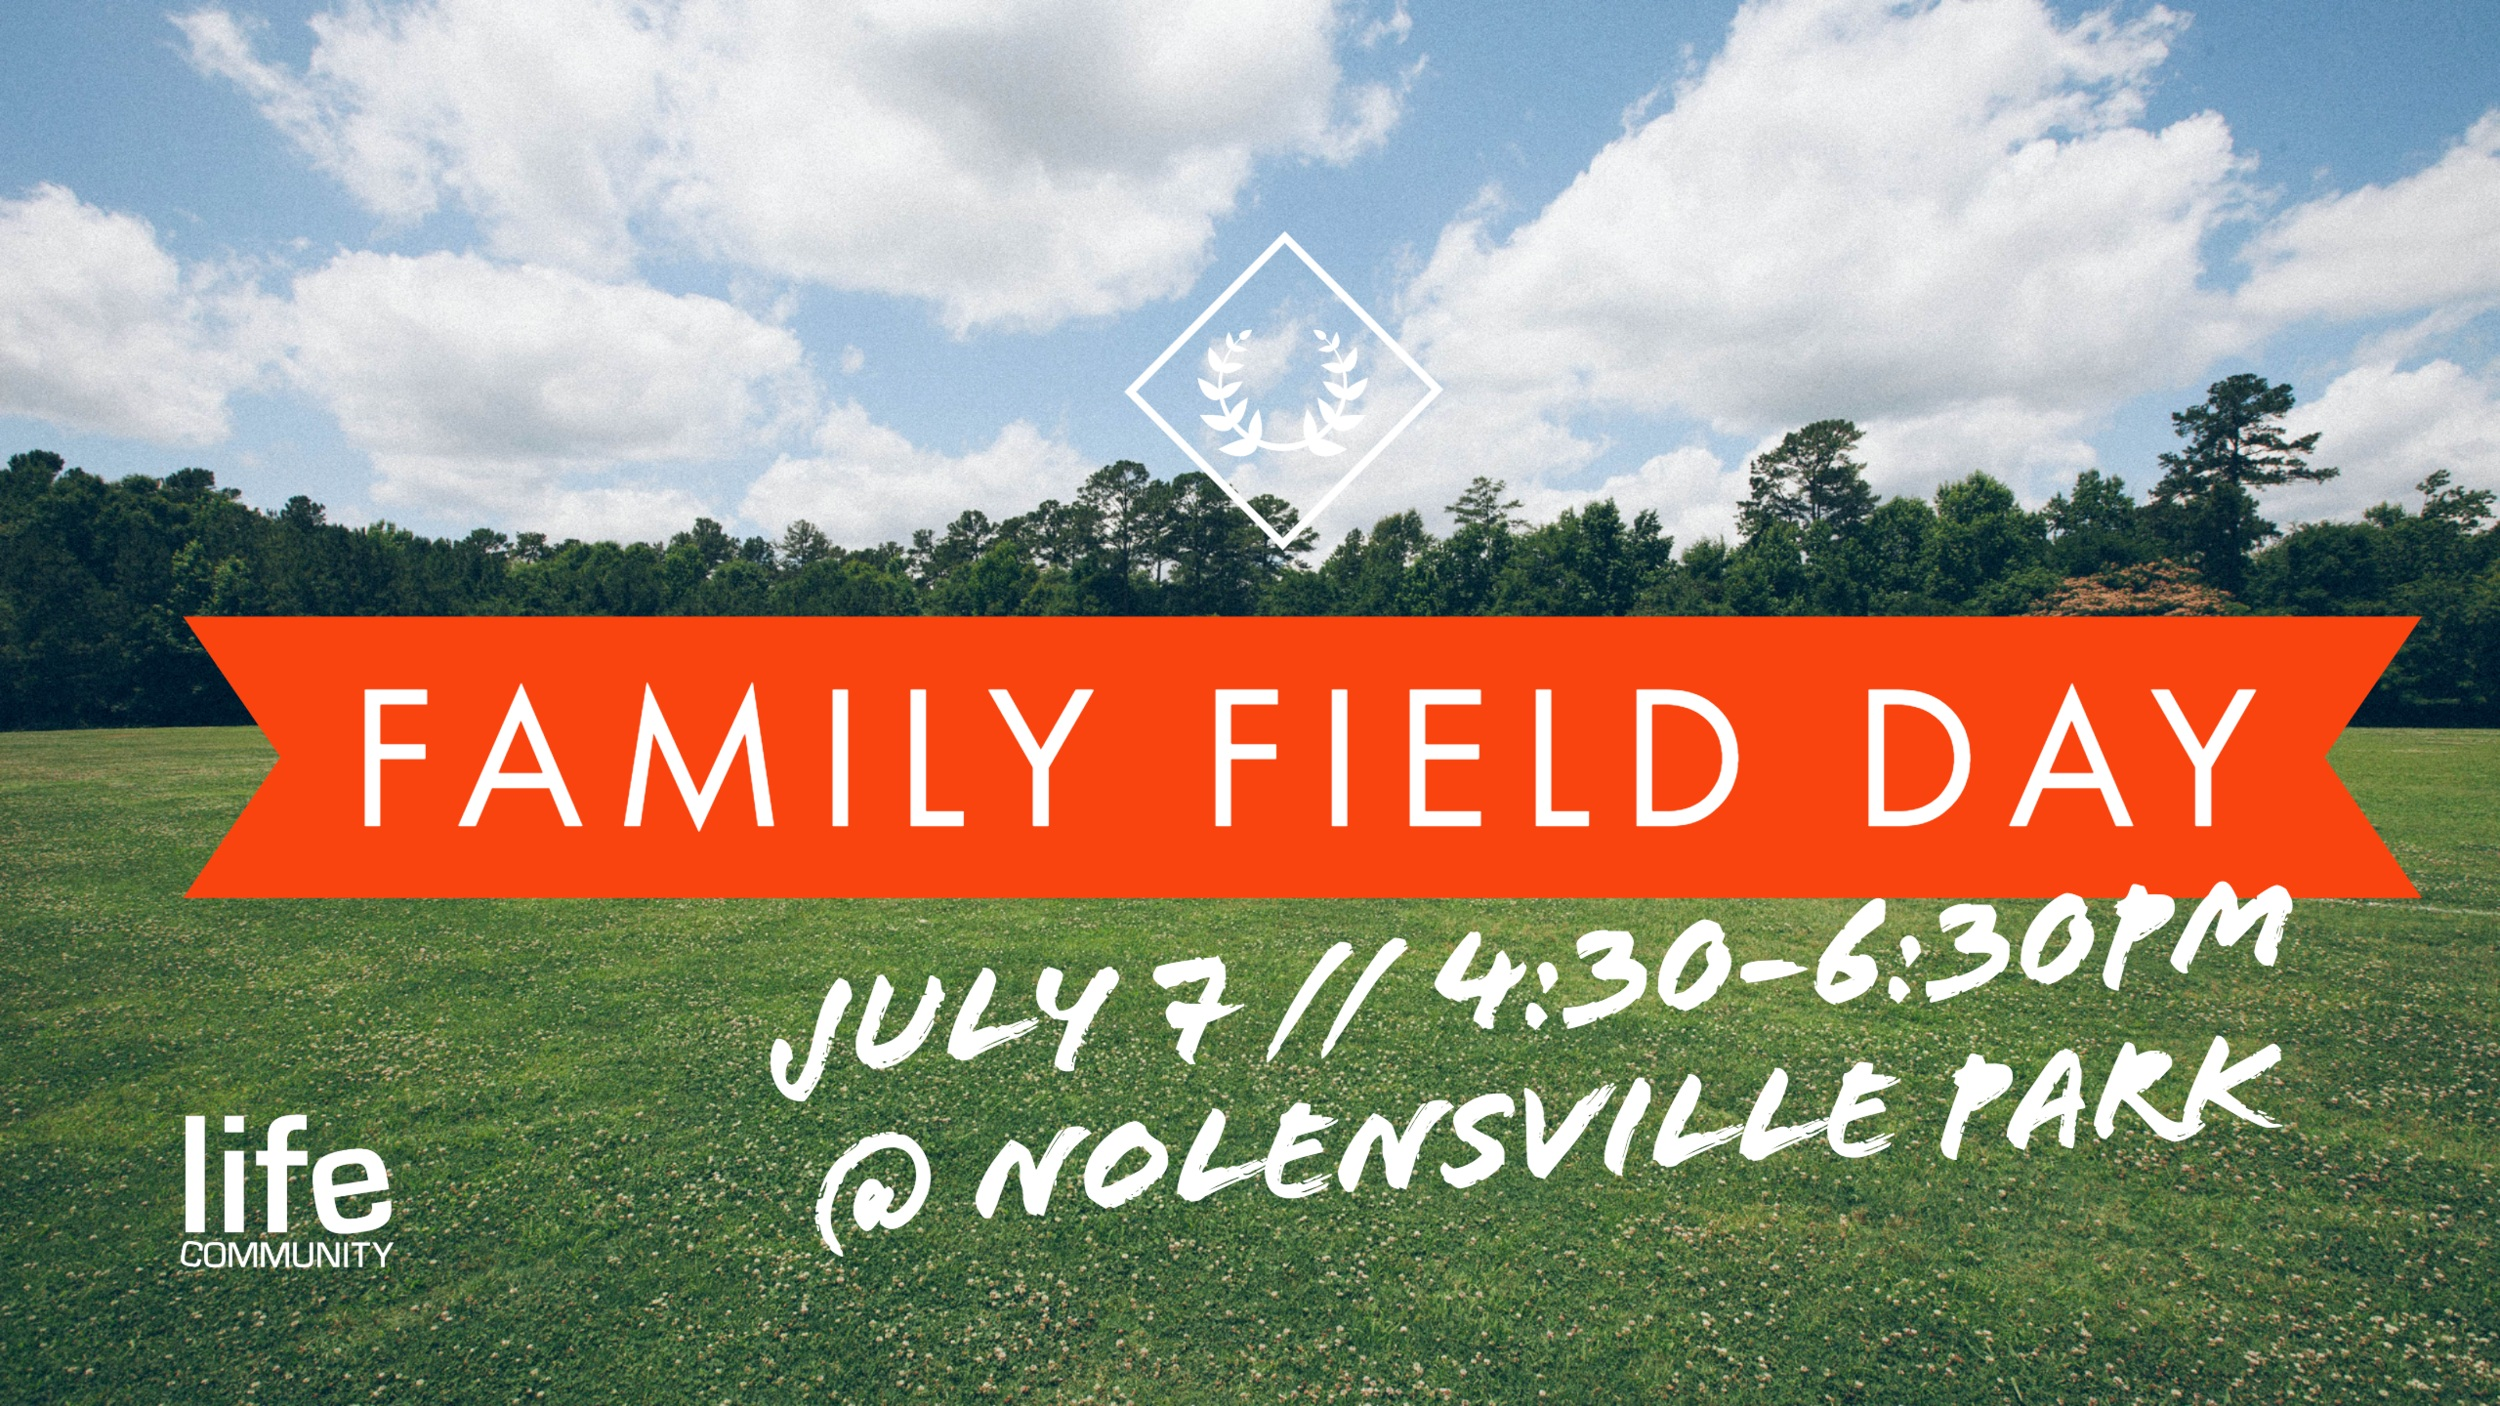 Join us at 4:30pm July 7th at the Nolensville park for our second annual Family Field Day. This is a great way for you to jump into community this summer!